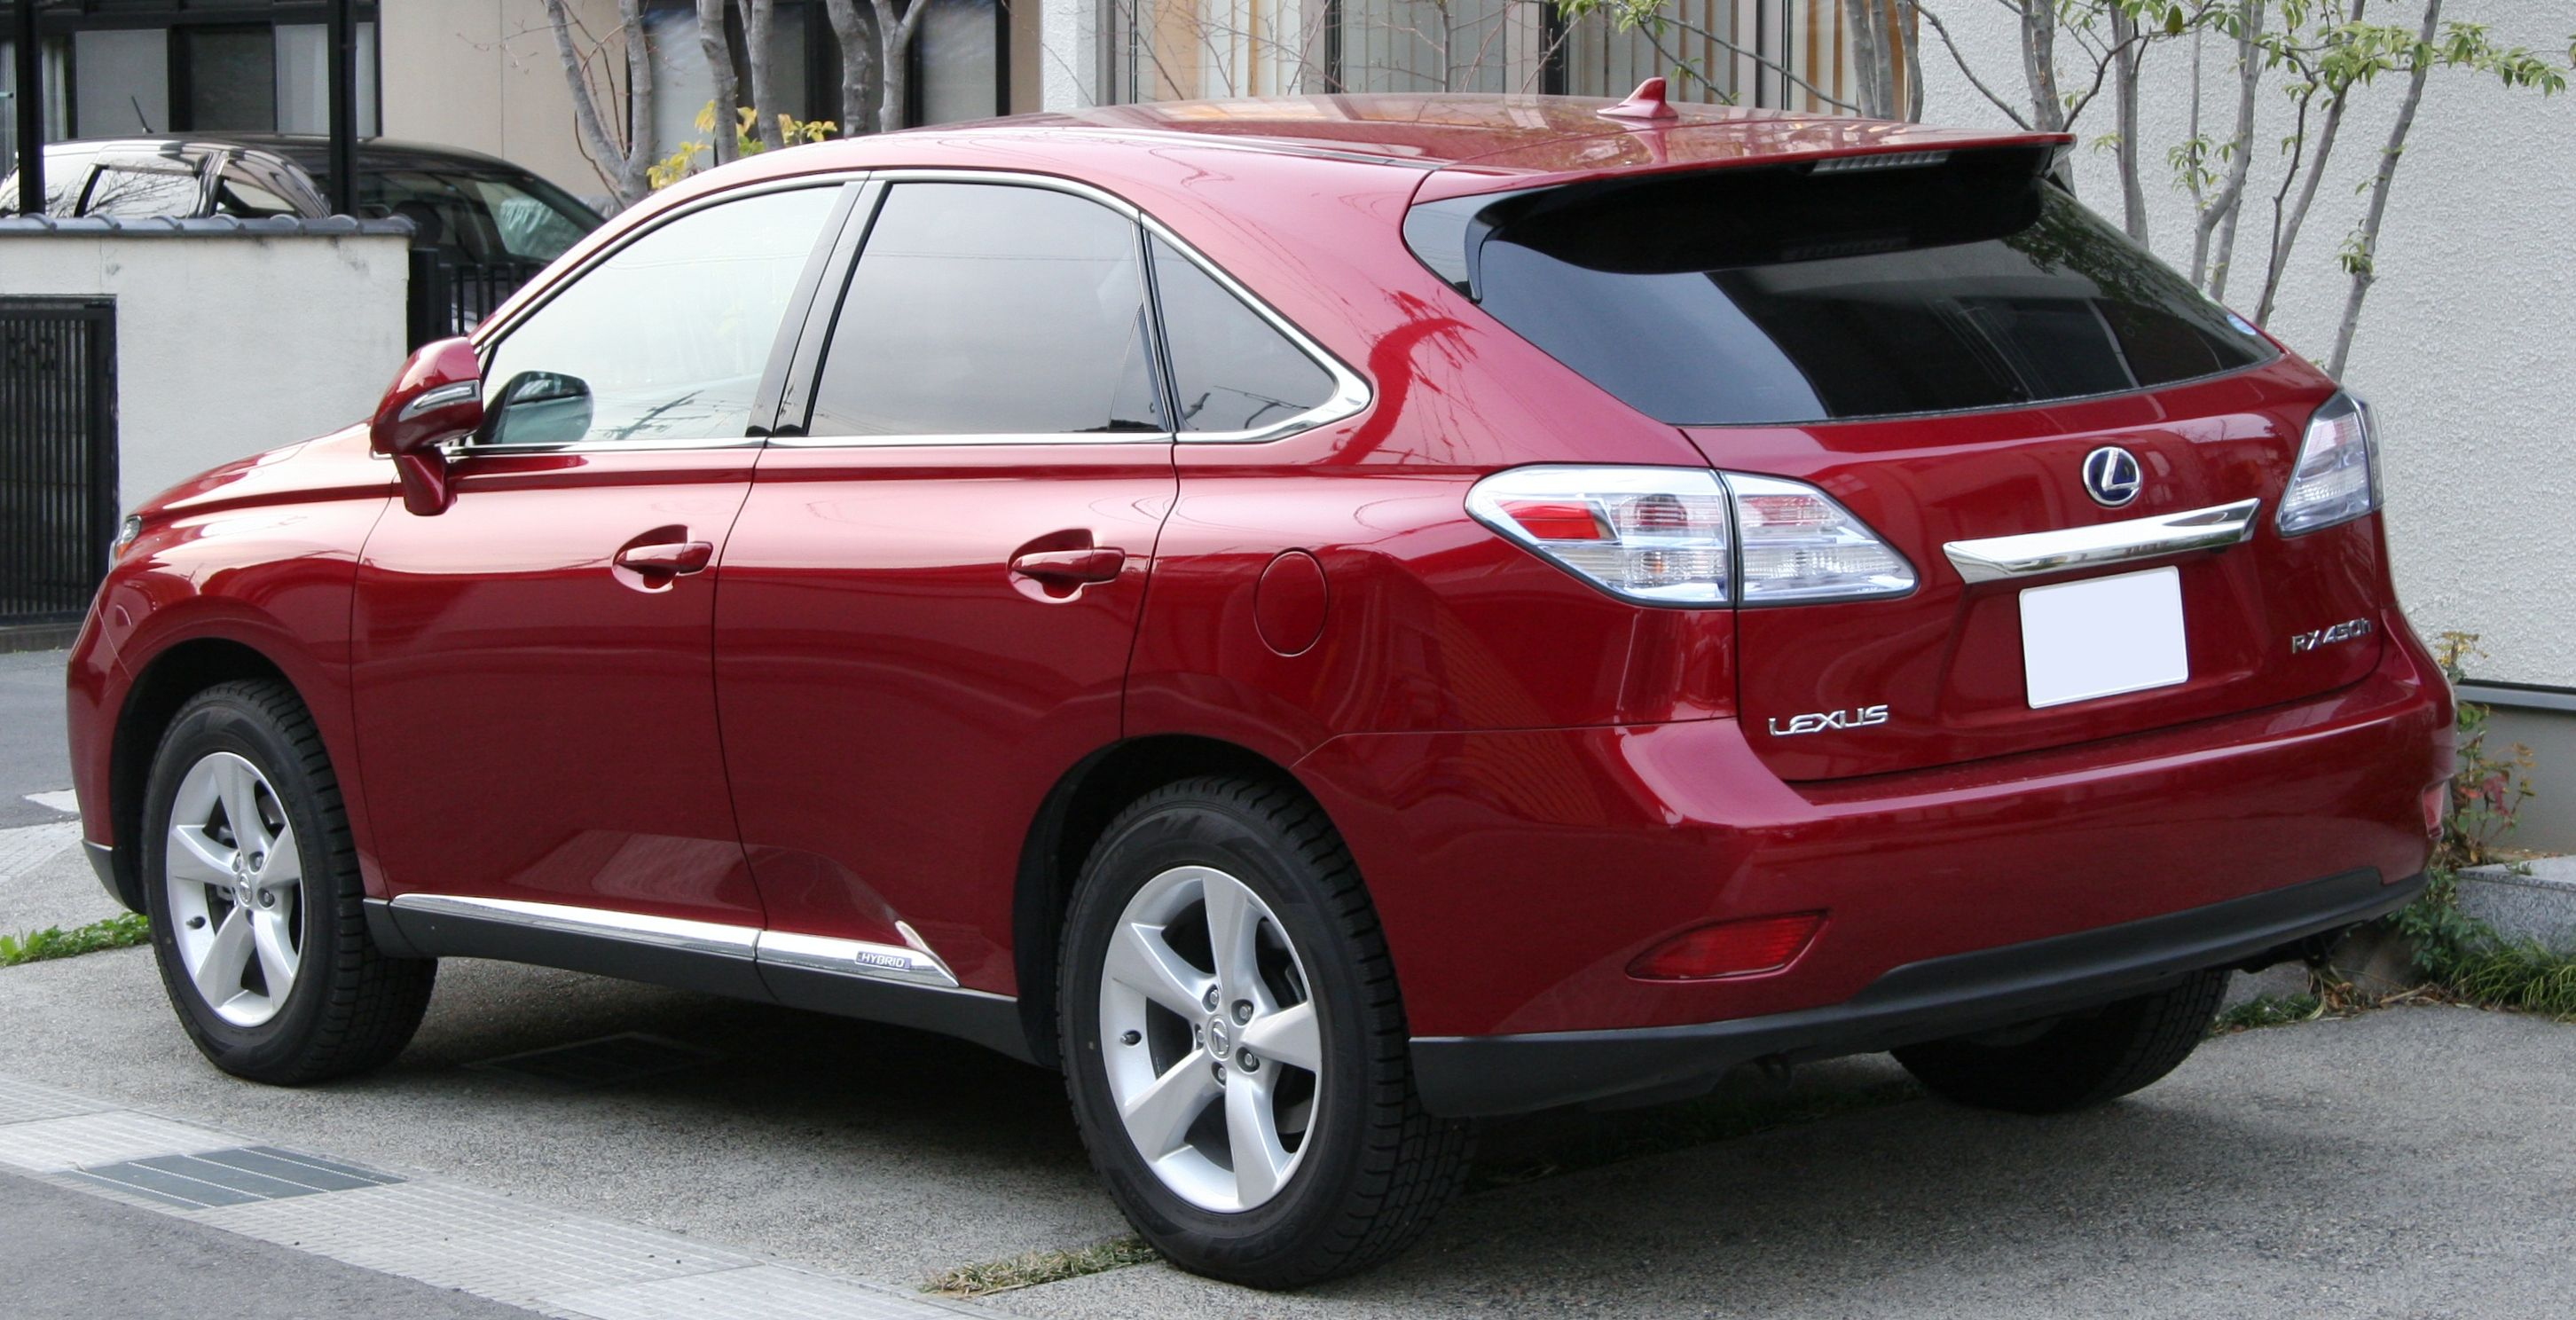 Lexus Rx 300 Venition Red Google Search